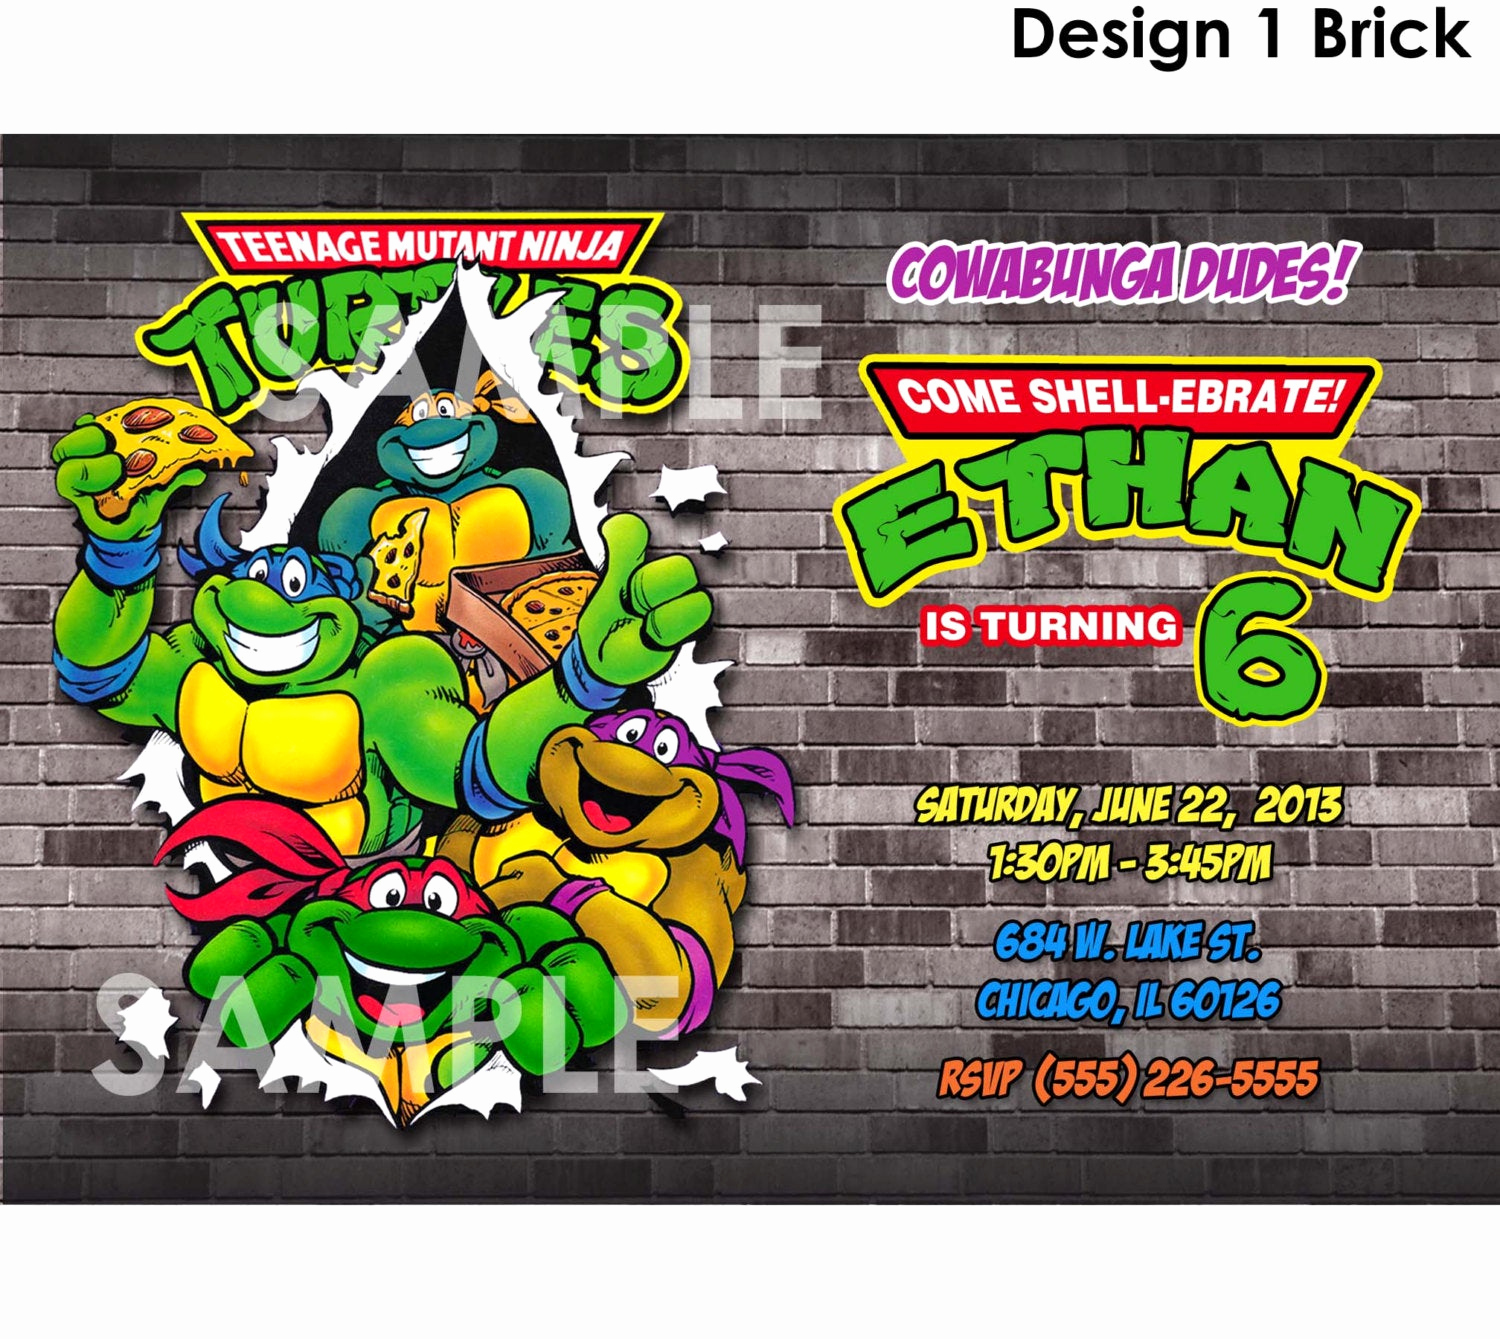 Ninja Turtle Birthday Invitation Template Lovely Teenage Mutant Ninja Turtles Invitation Printable Tmnt